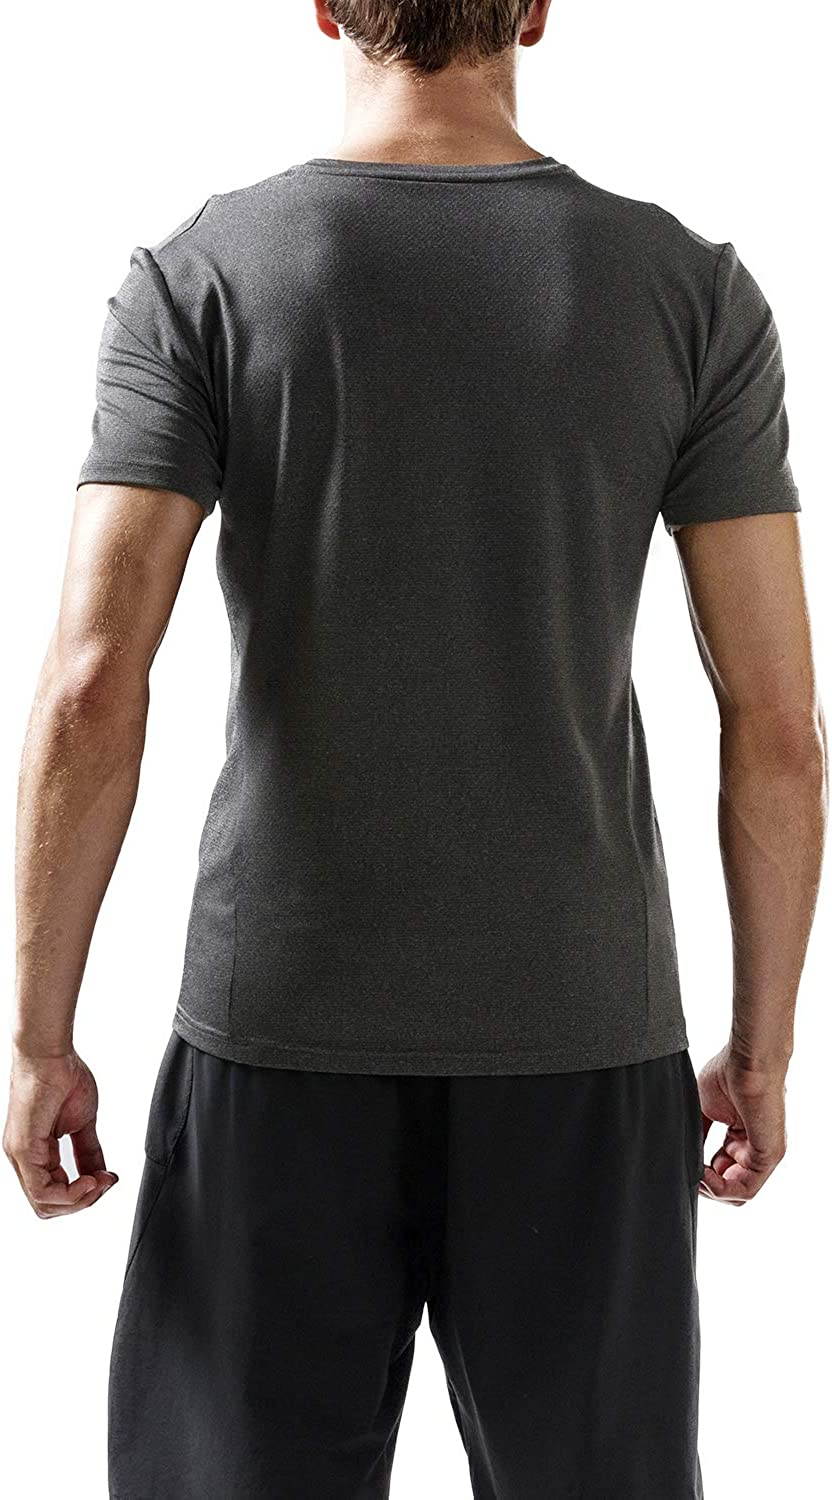 Outto Mens Fitness V-Neck Short Sleeve Quick Dry Running T-Shirt Top Large, 128T Black Gray